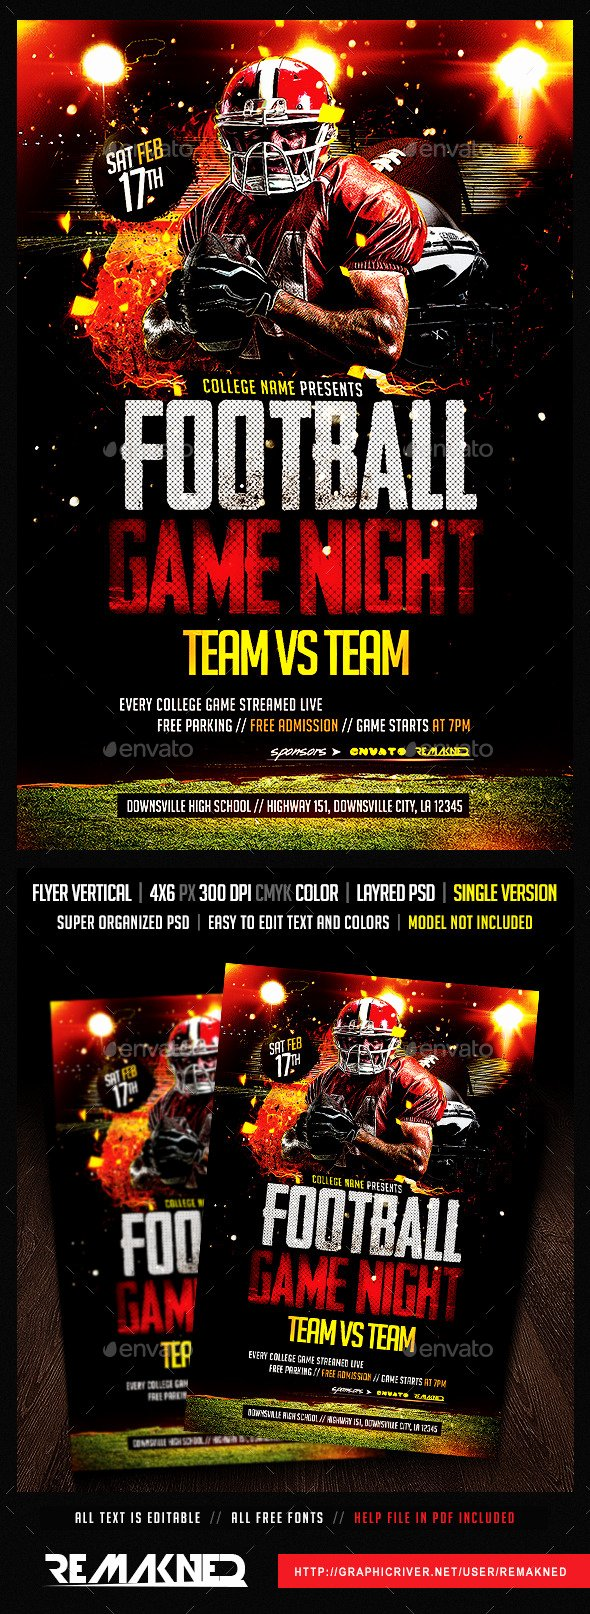 Game Night Flyer Template Awesome College Night Flyer Templetes Dondrup